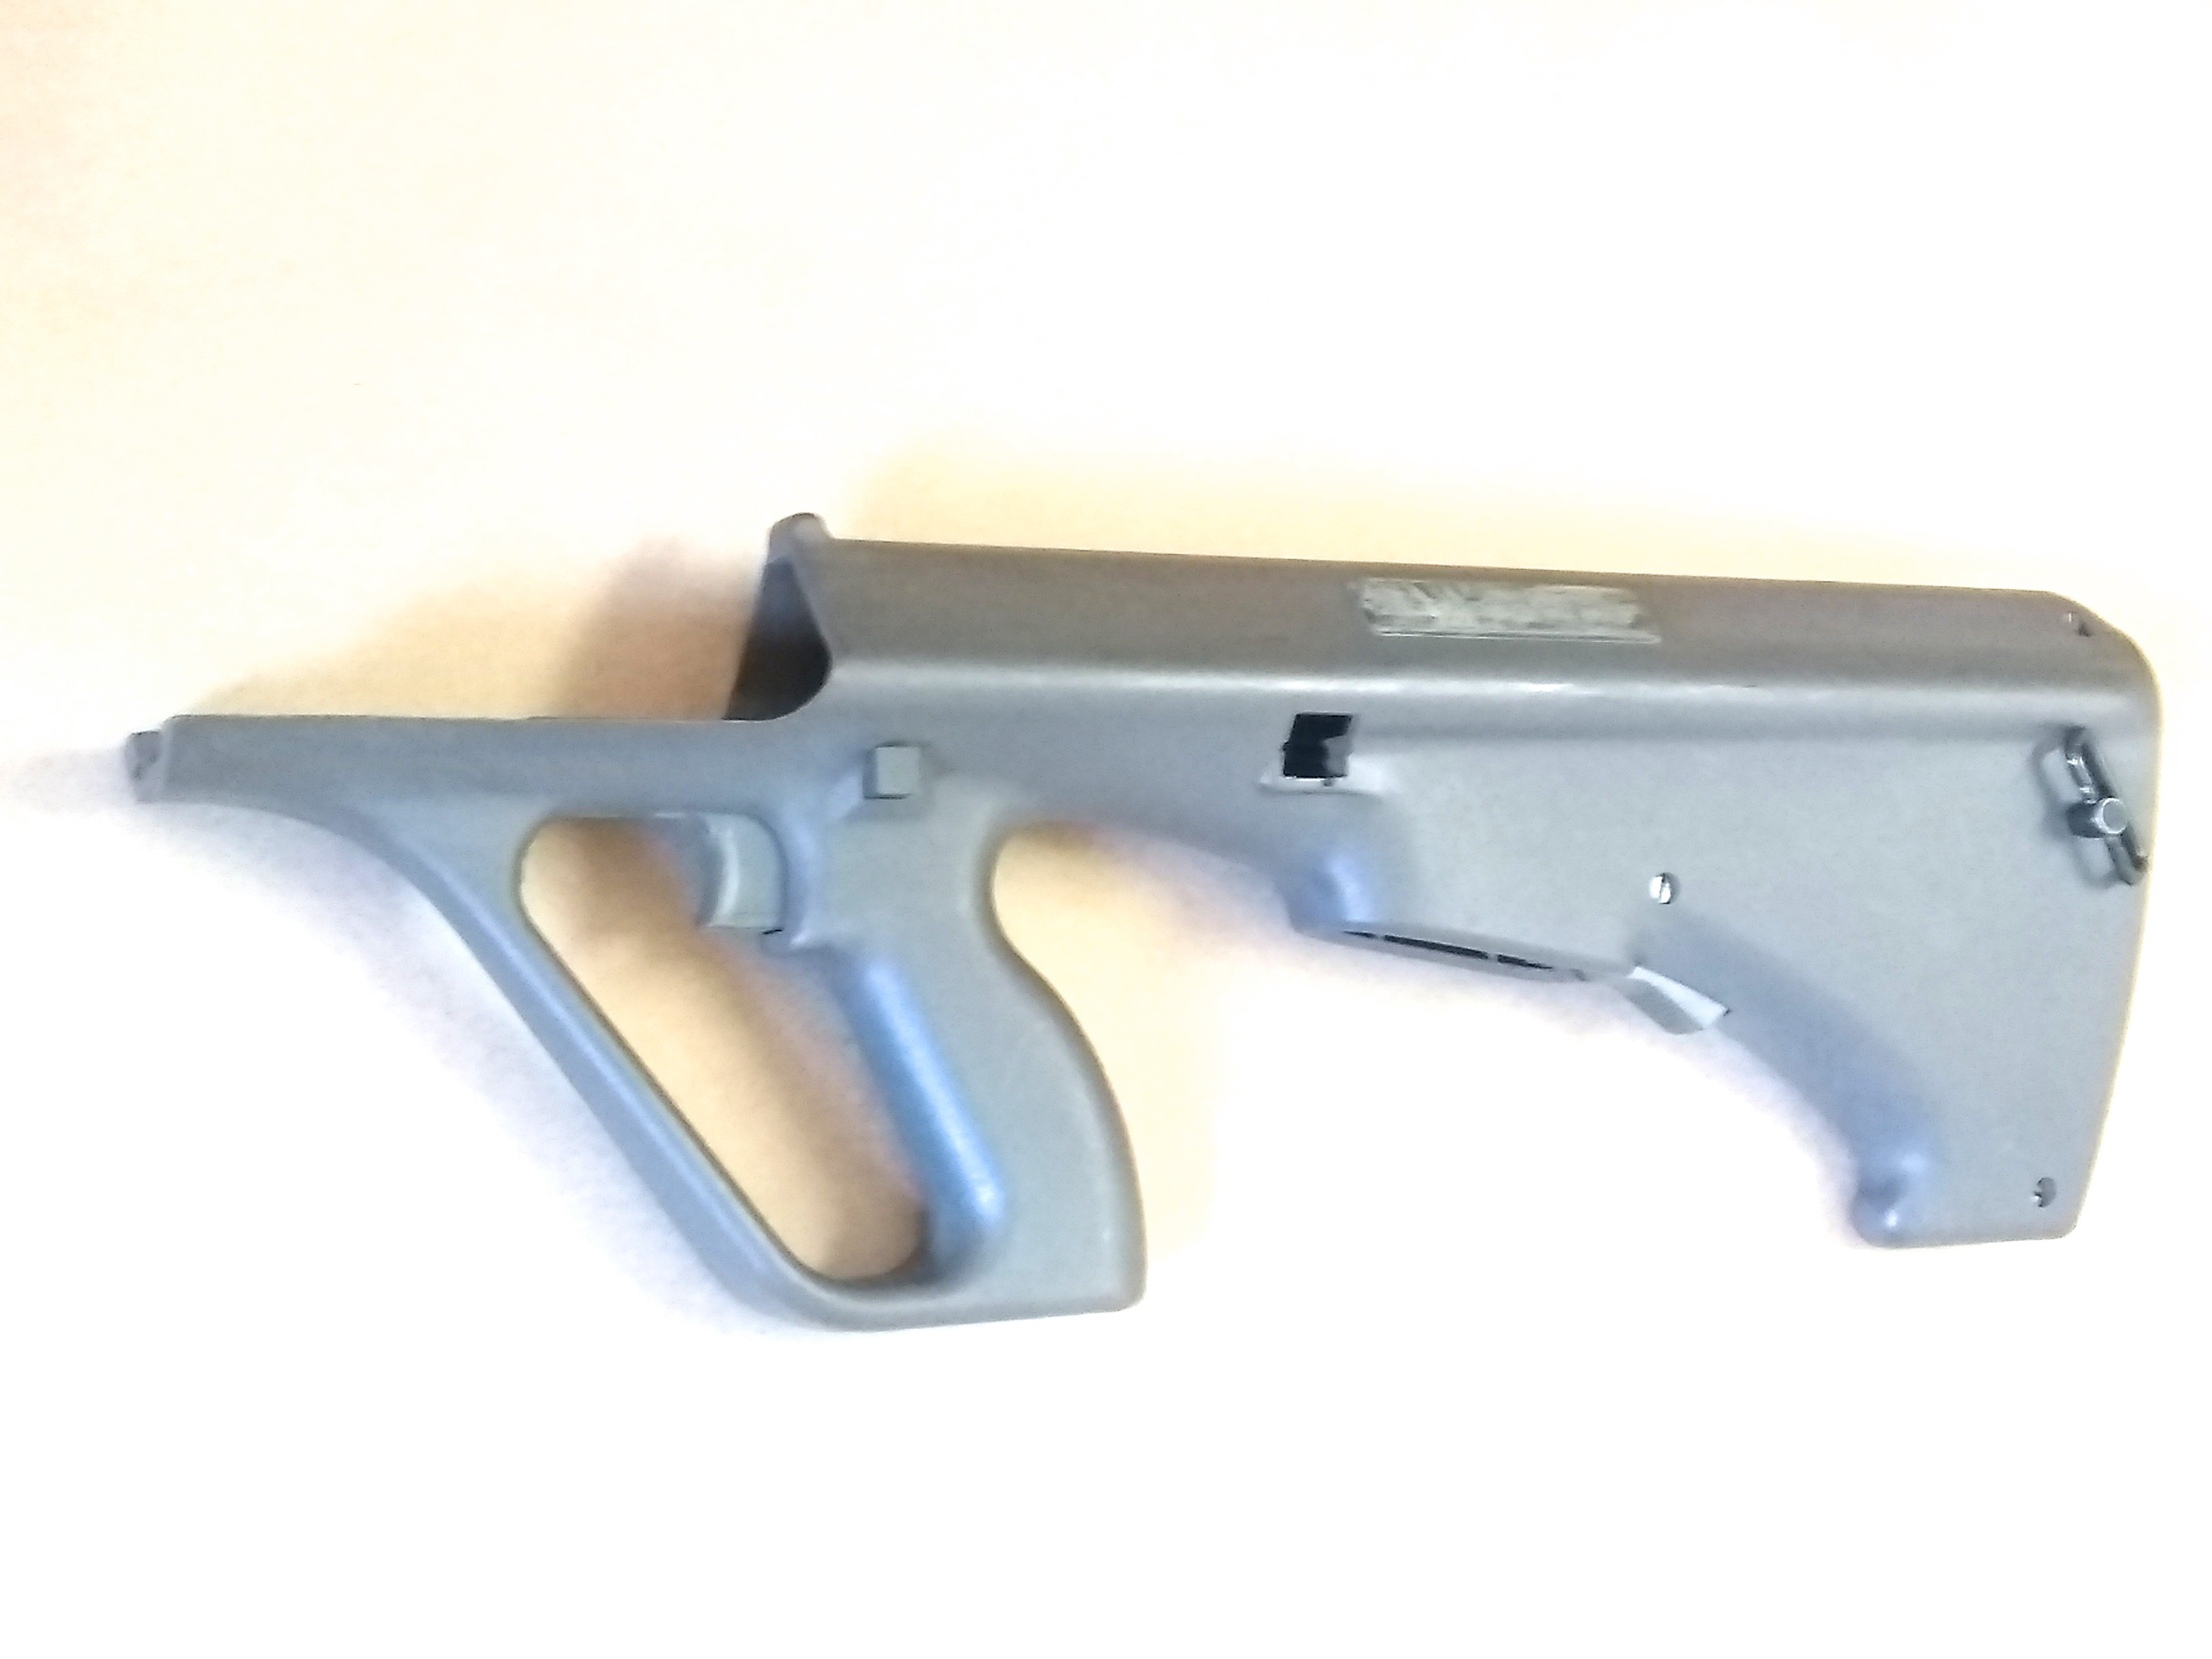 AUG SERIES LOWER RECEIVER REPLACEMENT for AIRSOFT AEG RIFLE